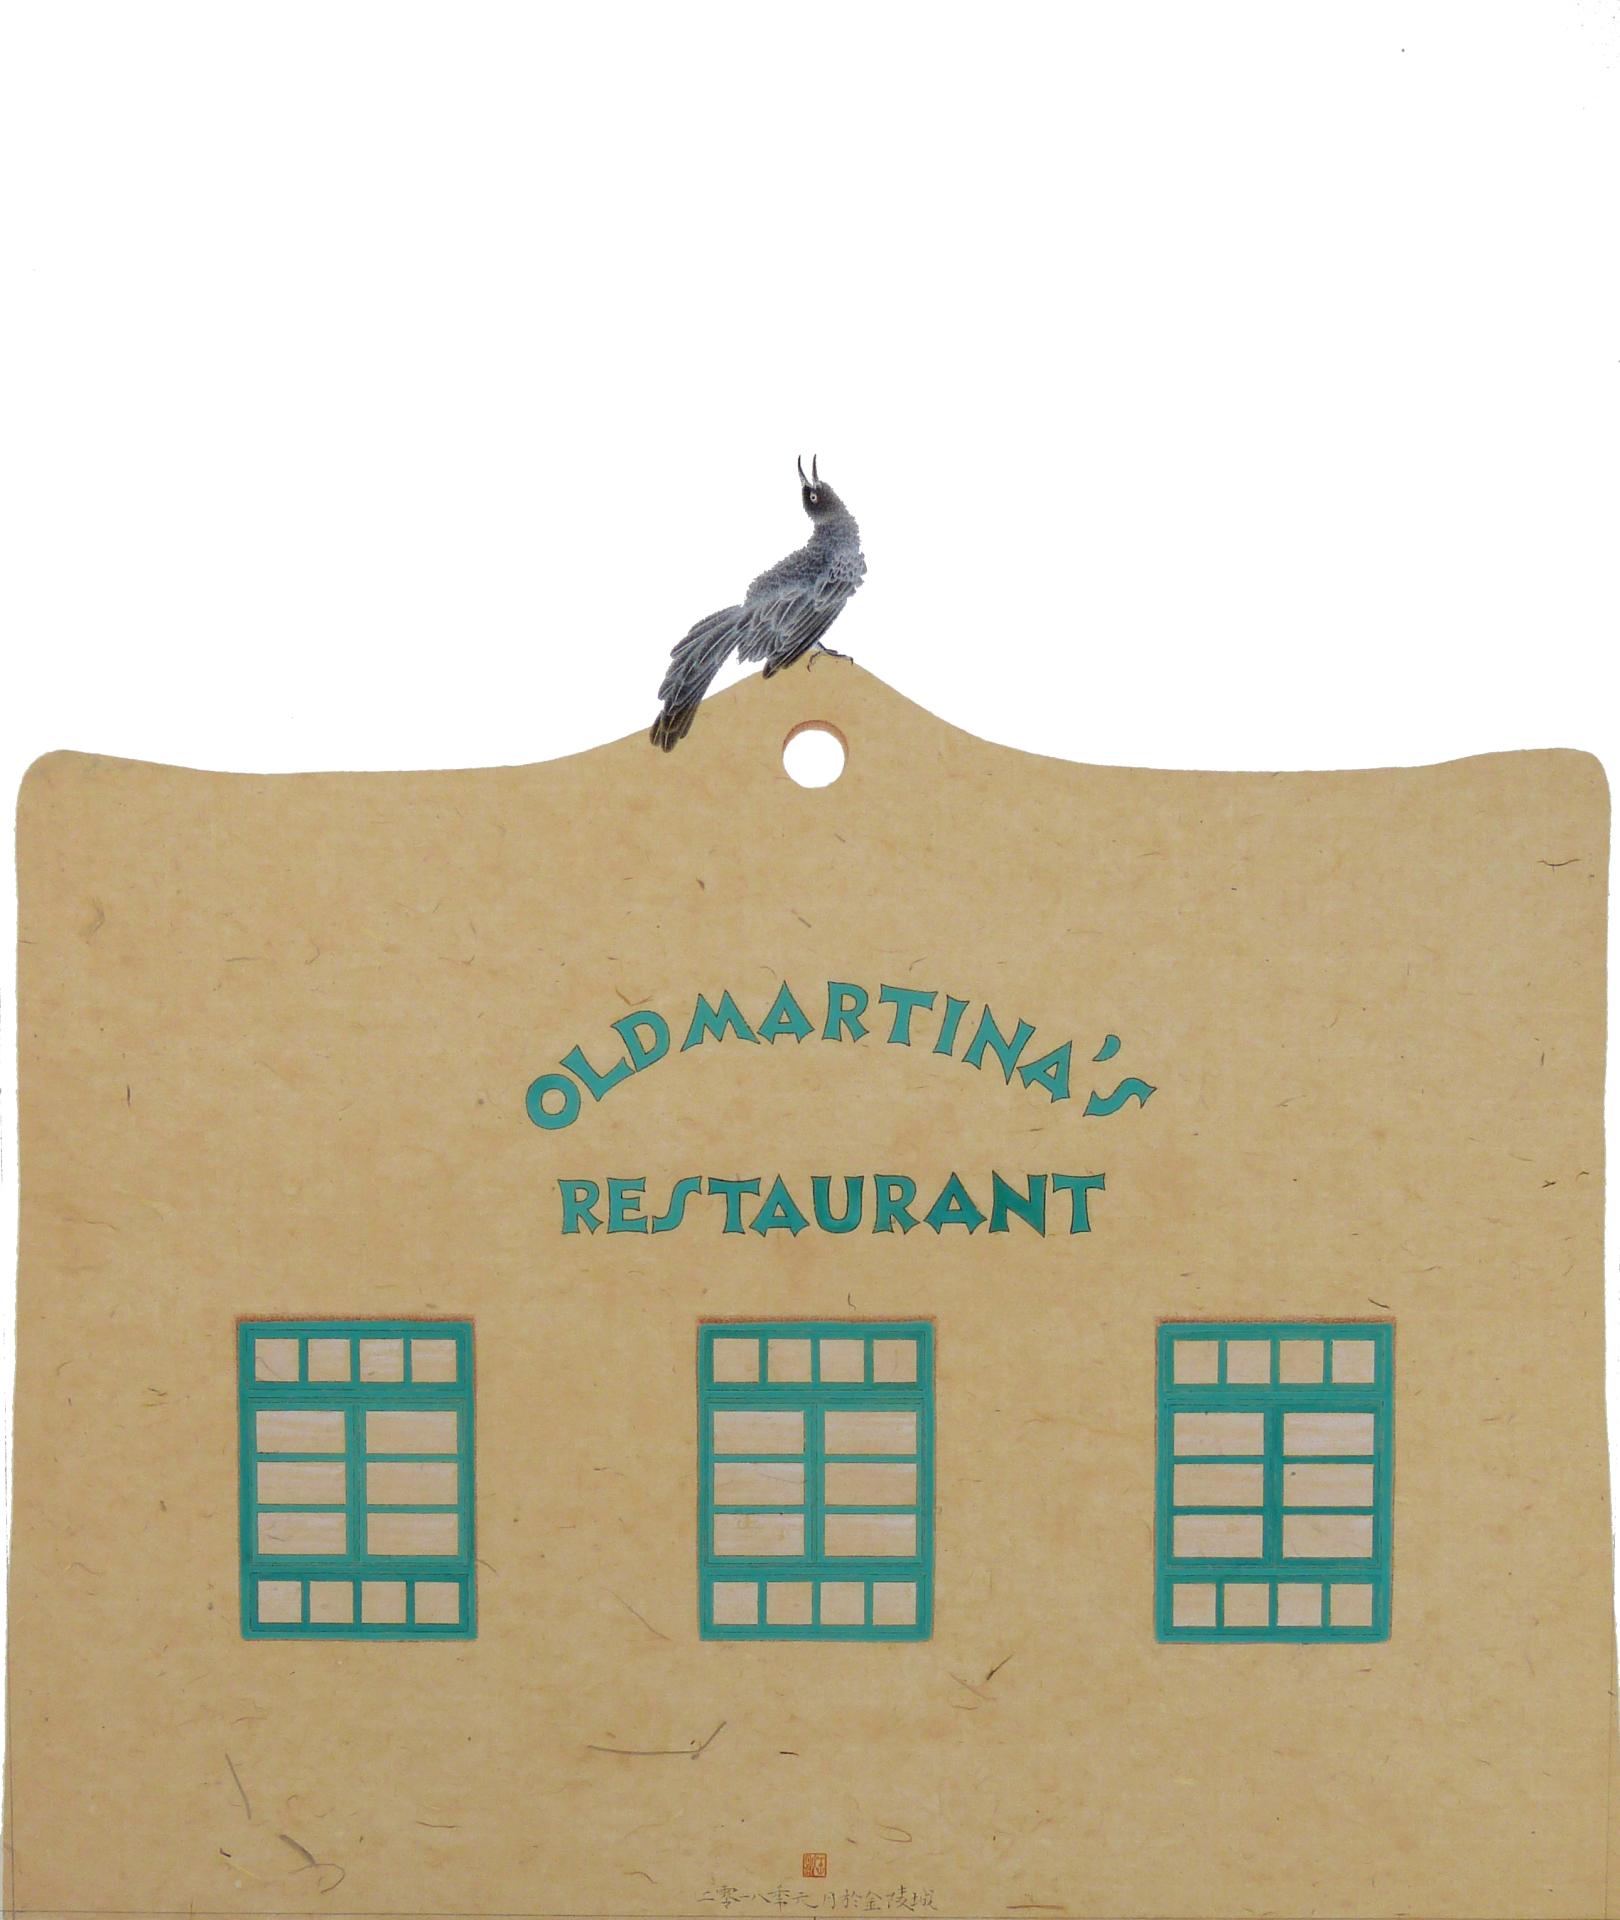 Old Martina's restaurant - 63*75